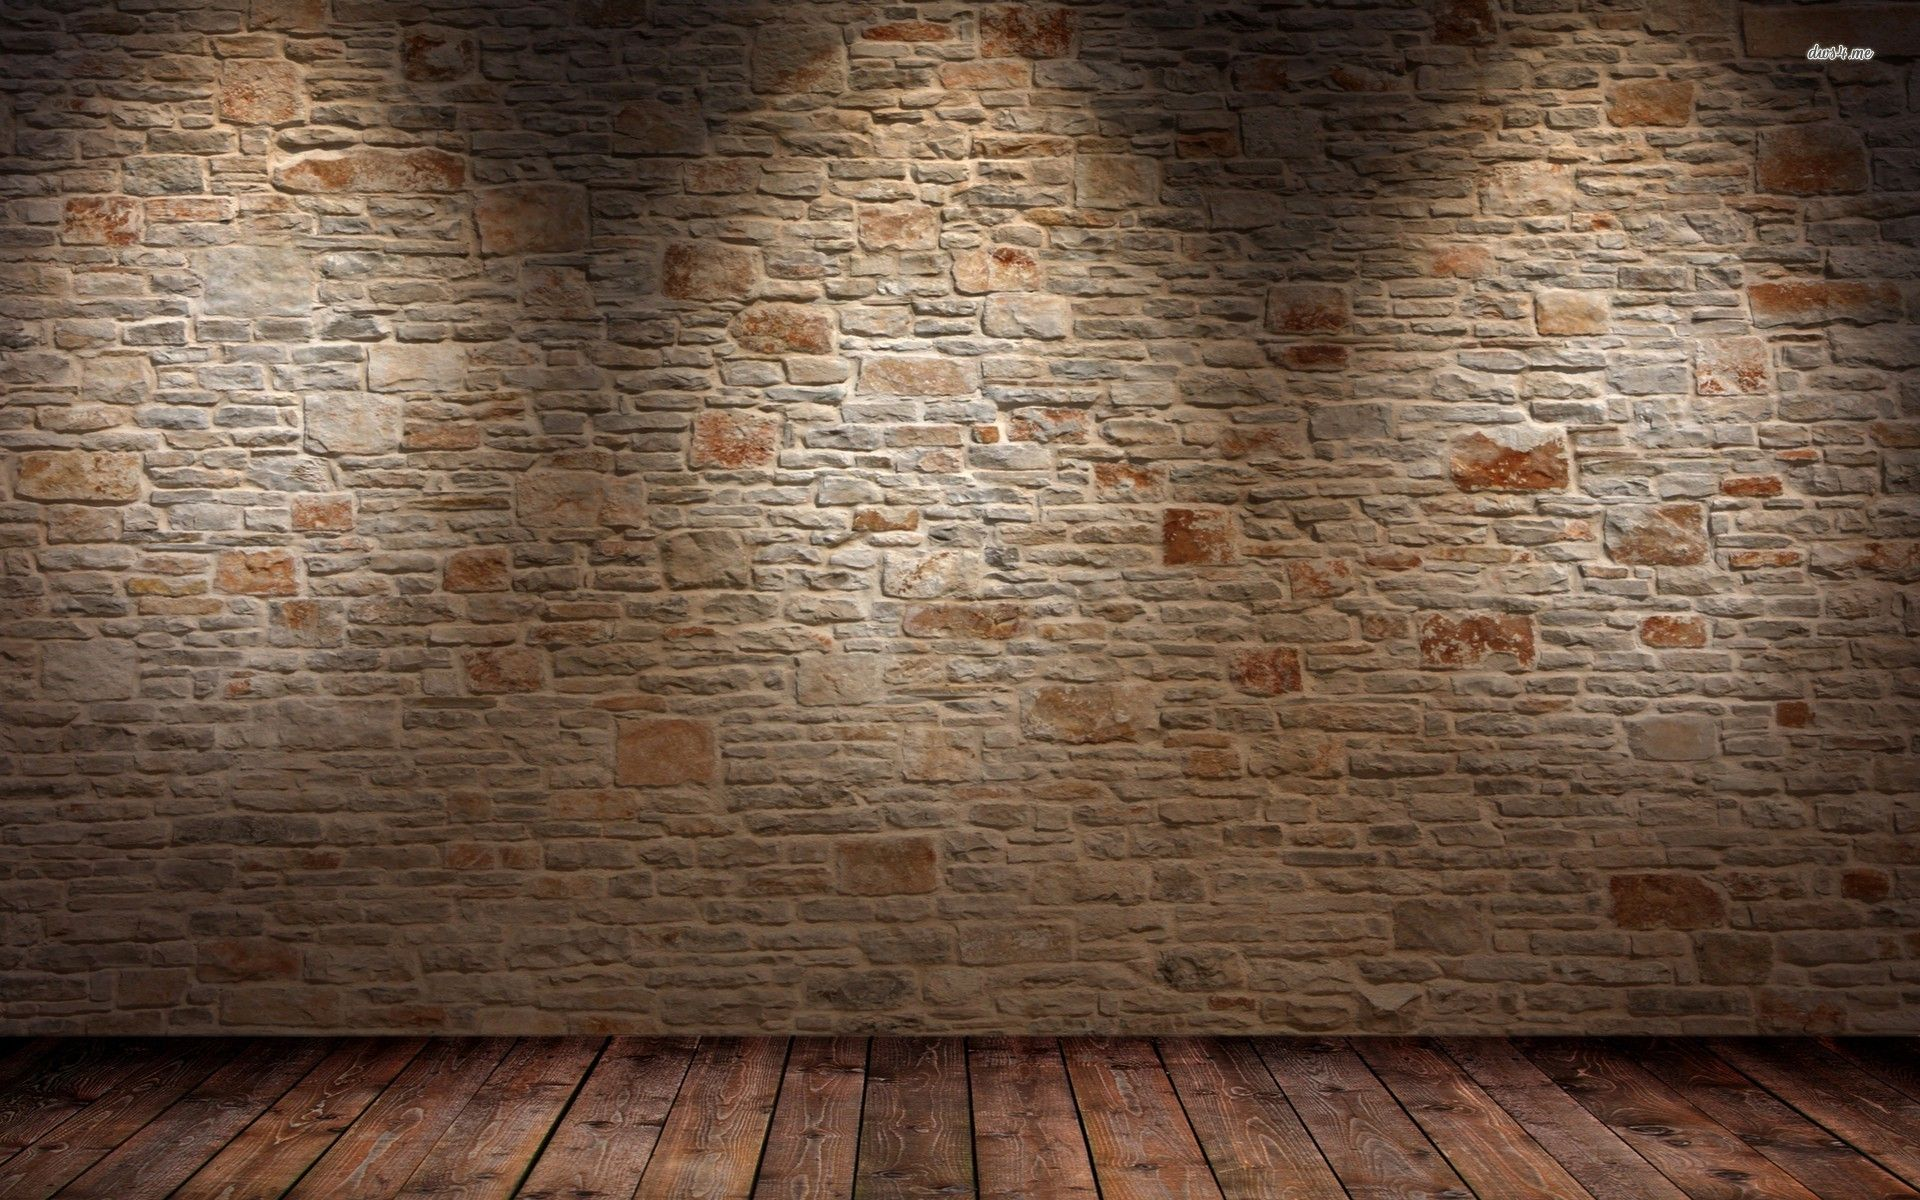 Brick wall and wood floor hd wallpaper 1 abstract for Wallpaper images for house walls